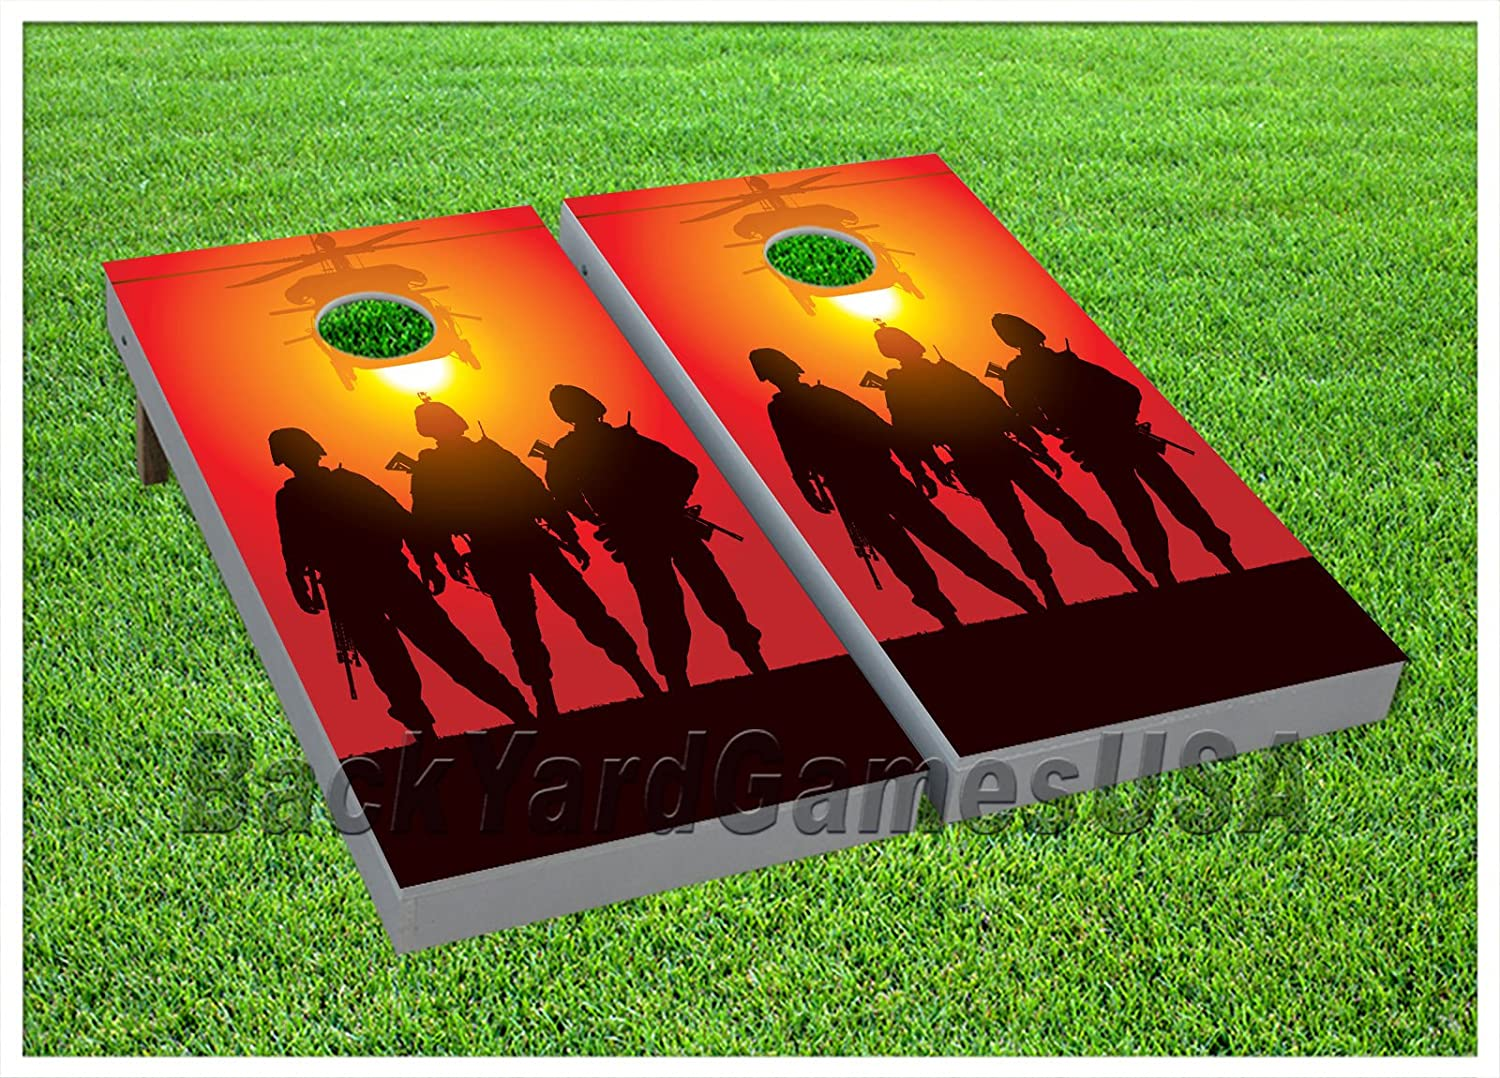 Army Troops Cornhole Beanbag Toss Game Wバッグゲームボードサンセットセット617   B0714QKTFM